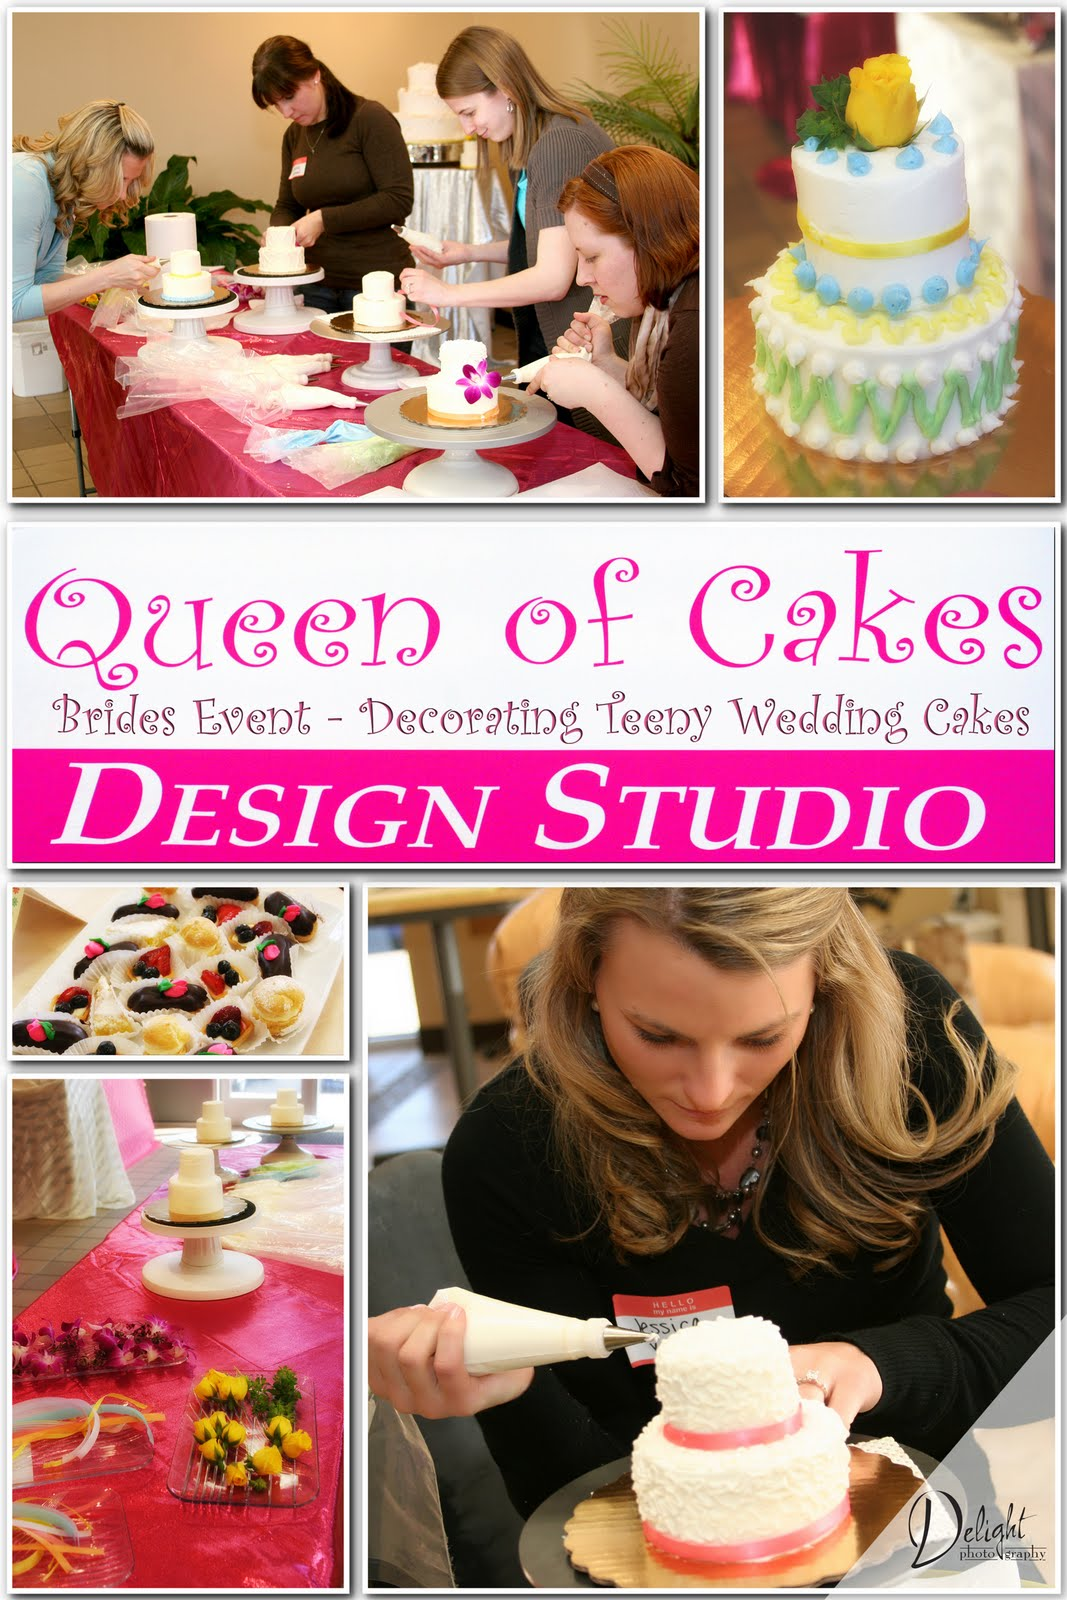 Queen of Cakes is a Wedding Cake in Edina, MN. Read reviews, view photos, see special offers, and contact Queen of Cakes directly on The Knot.5/5().